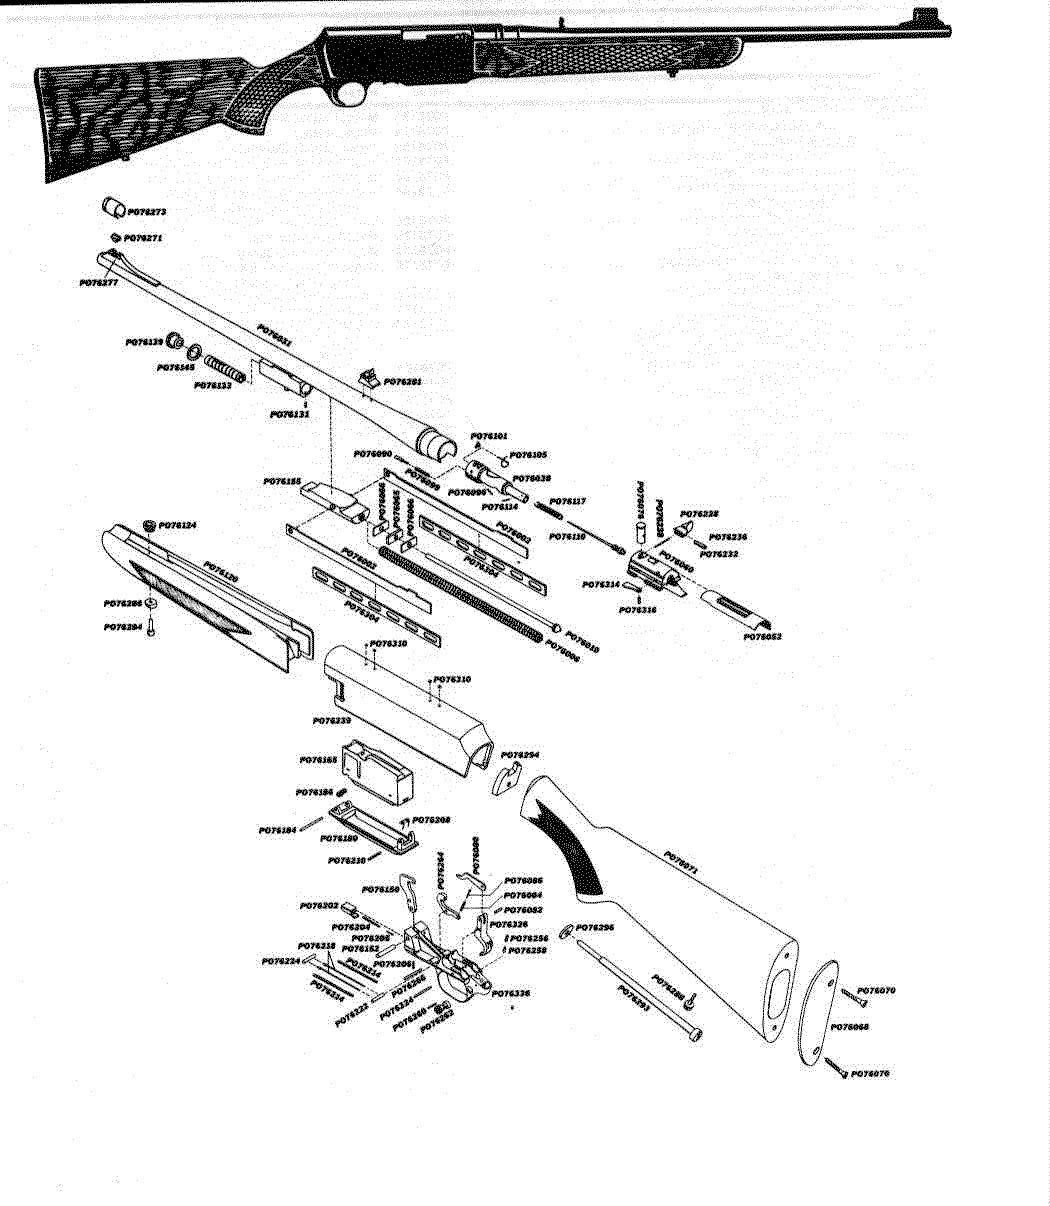 browning hi power parts diagram 2003 international 4300 wiring downloads us armorment the art and science of shooting